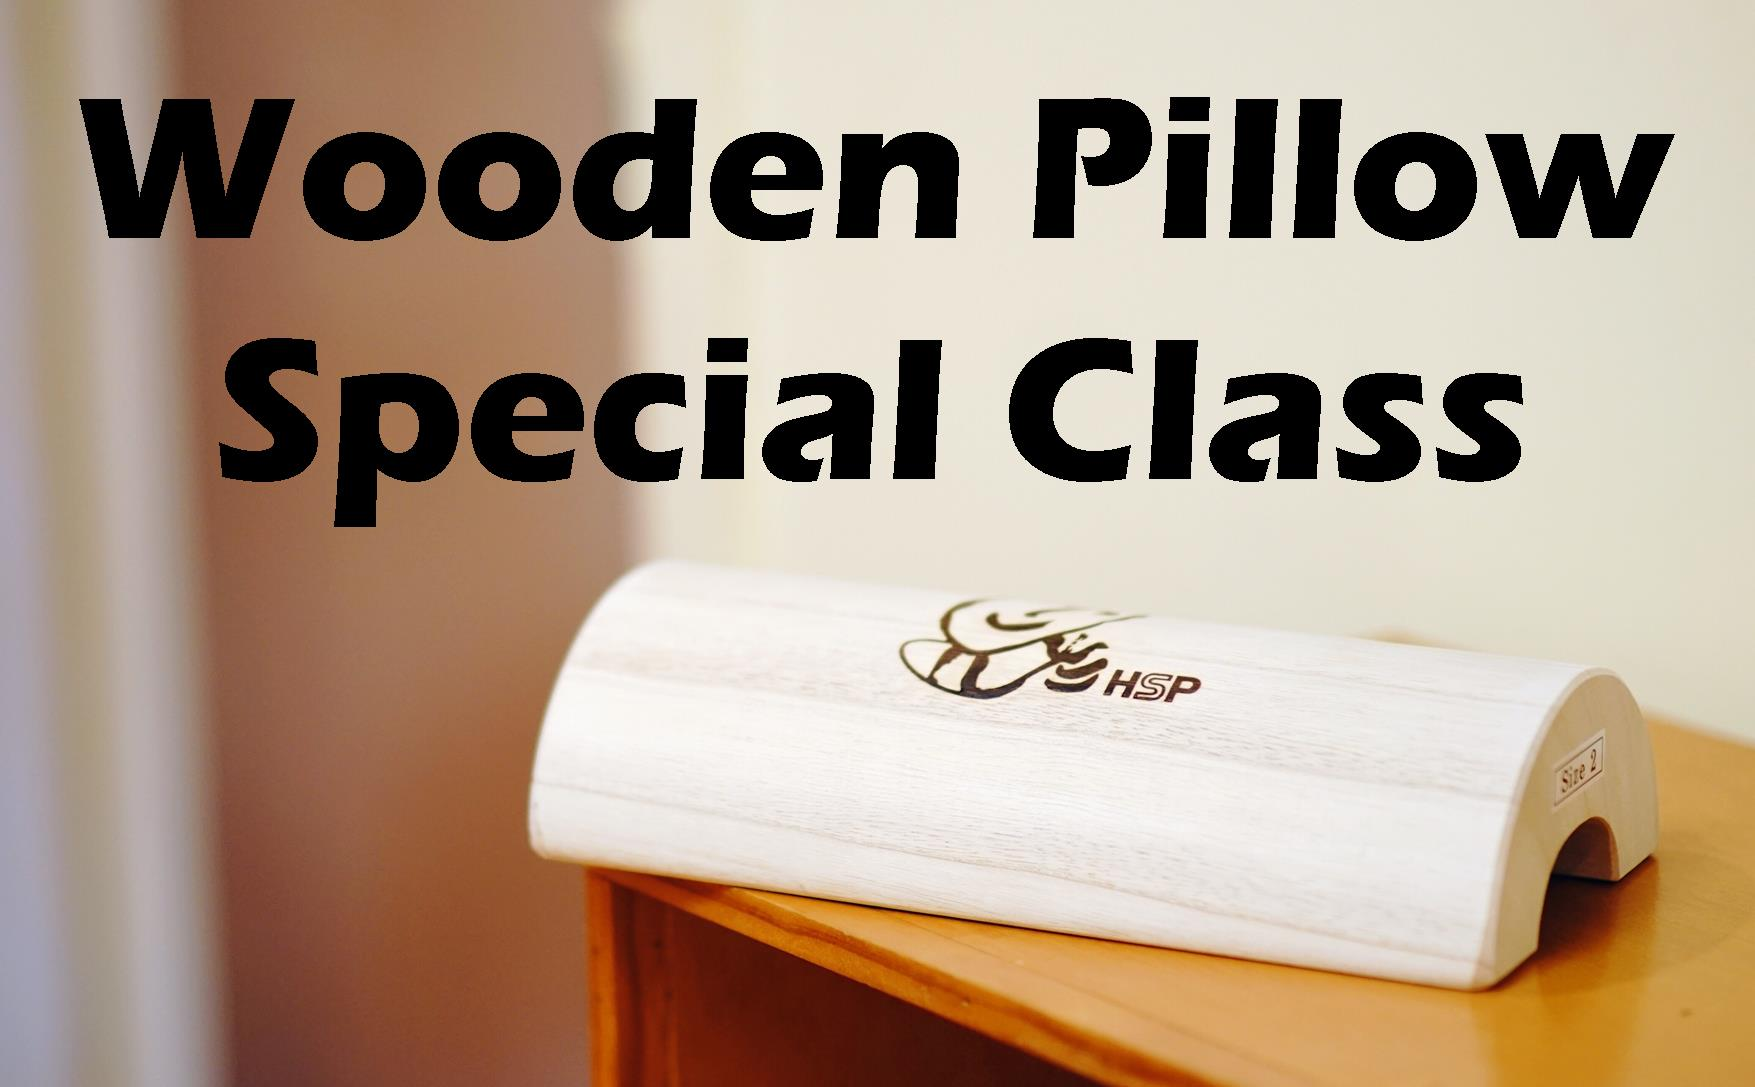 Special Wooden Pillow Class now Every Saturday